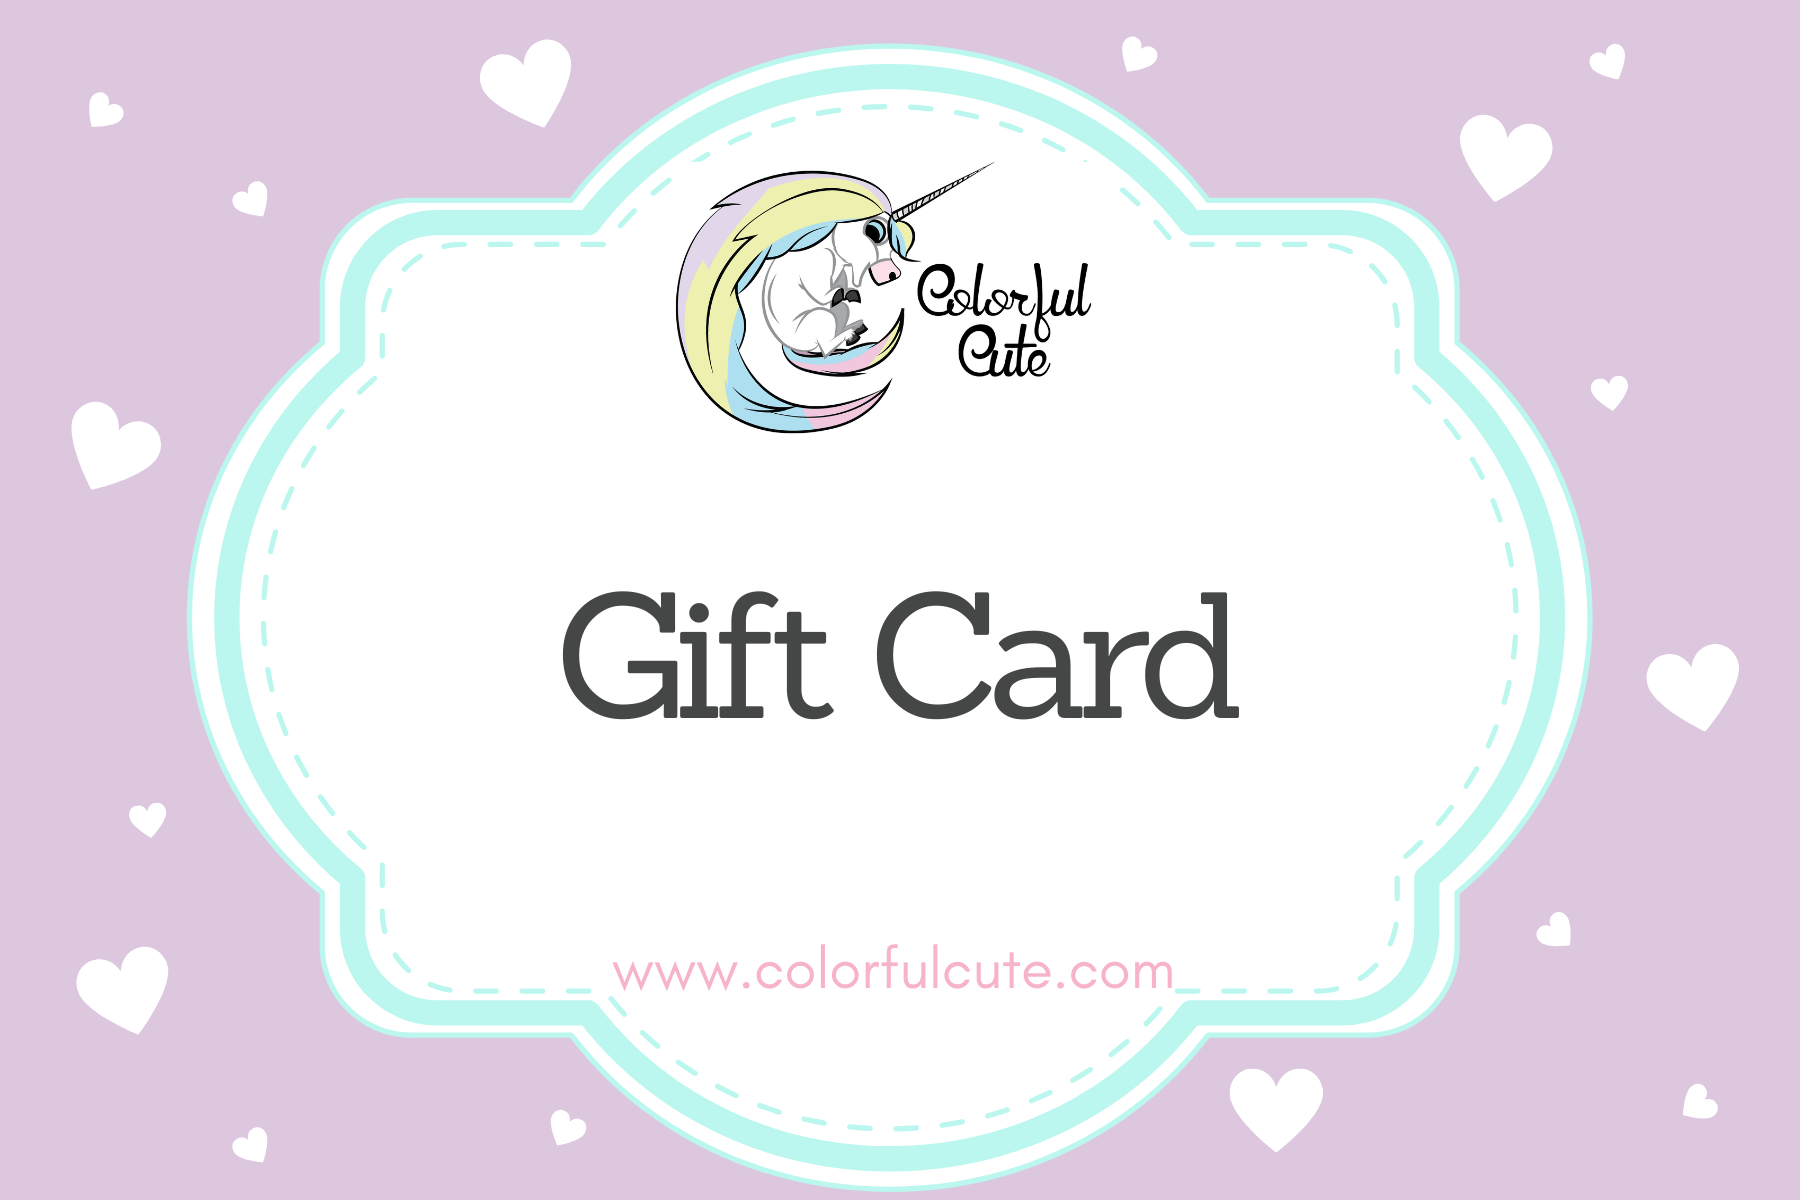 Colorful Cute Gift Card